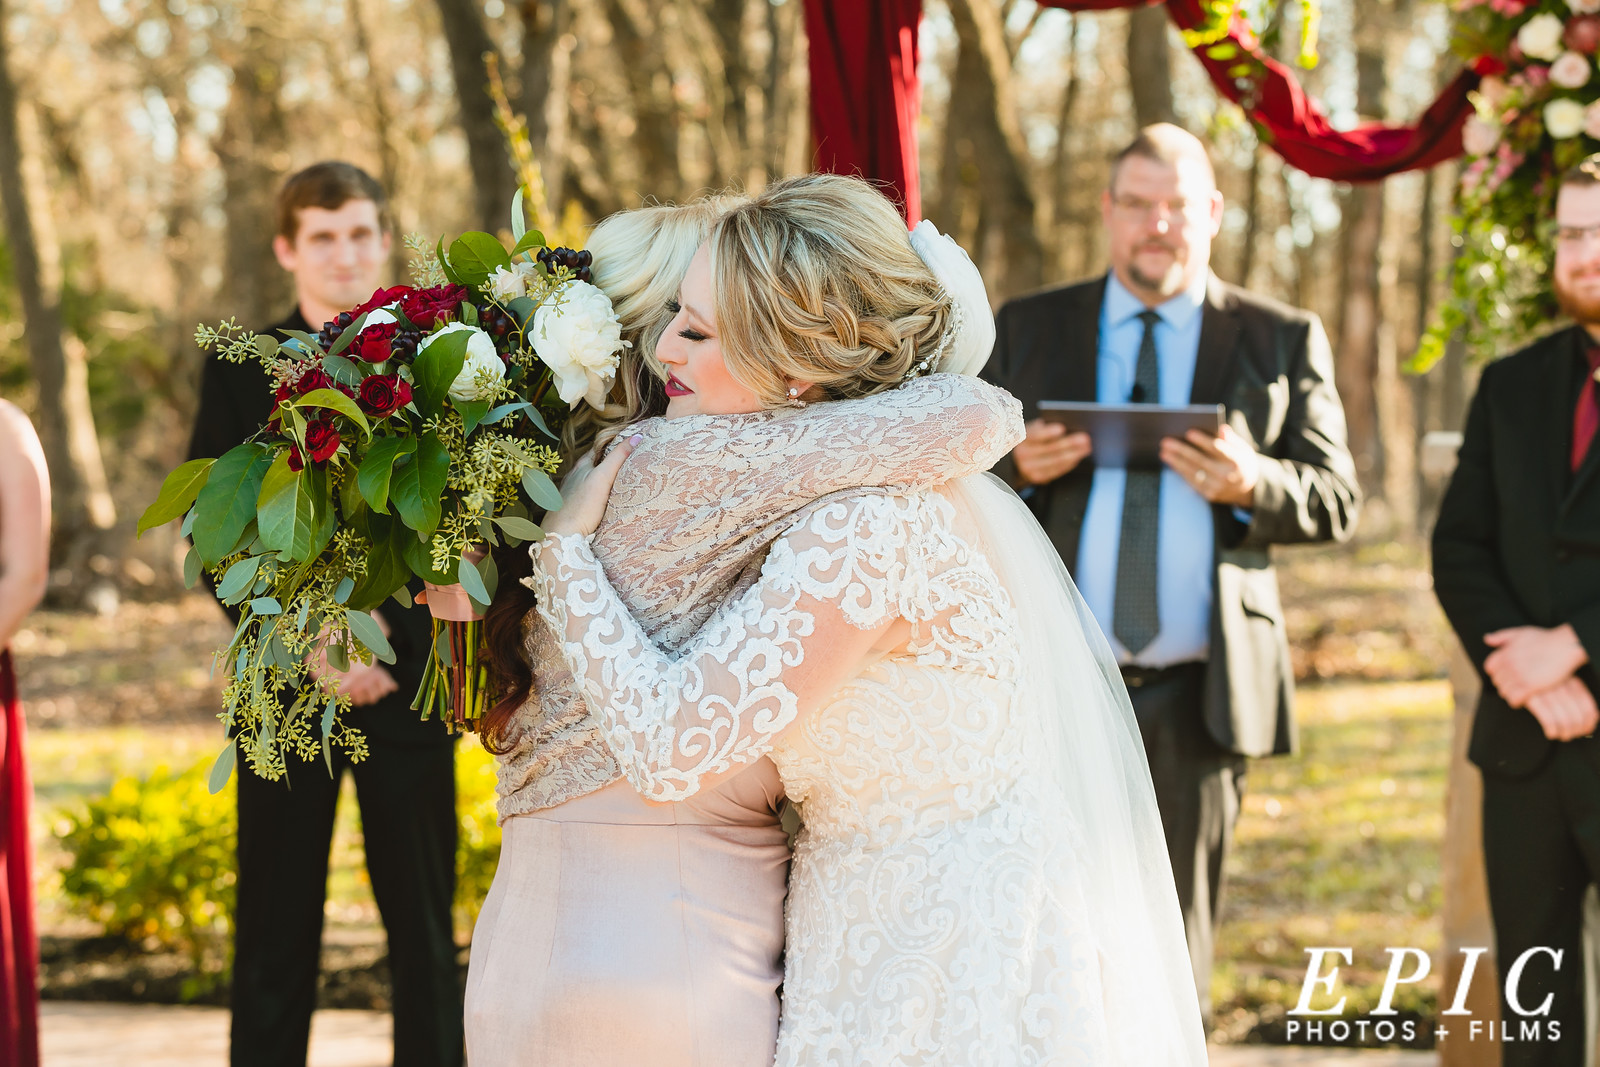 Hailee hugging her mother after being walked down the aisle during her wedding ceremony